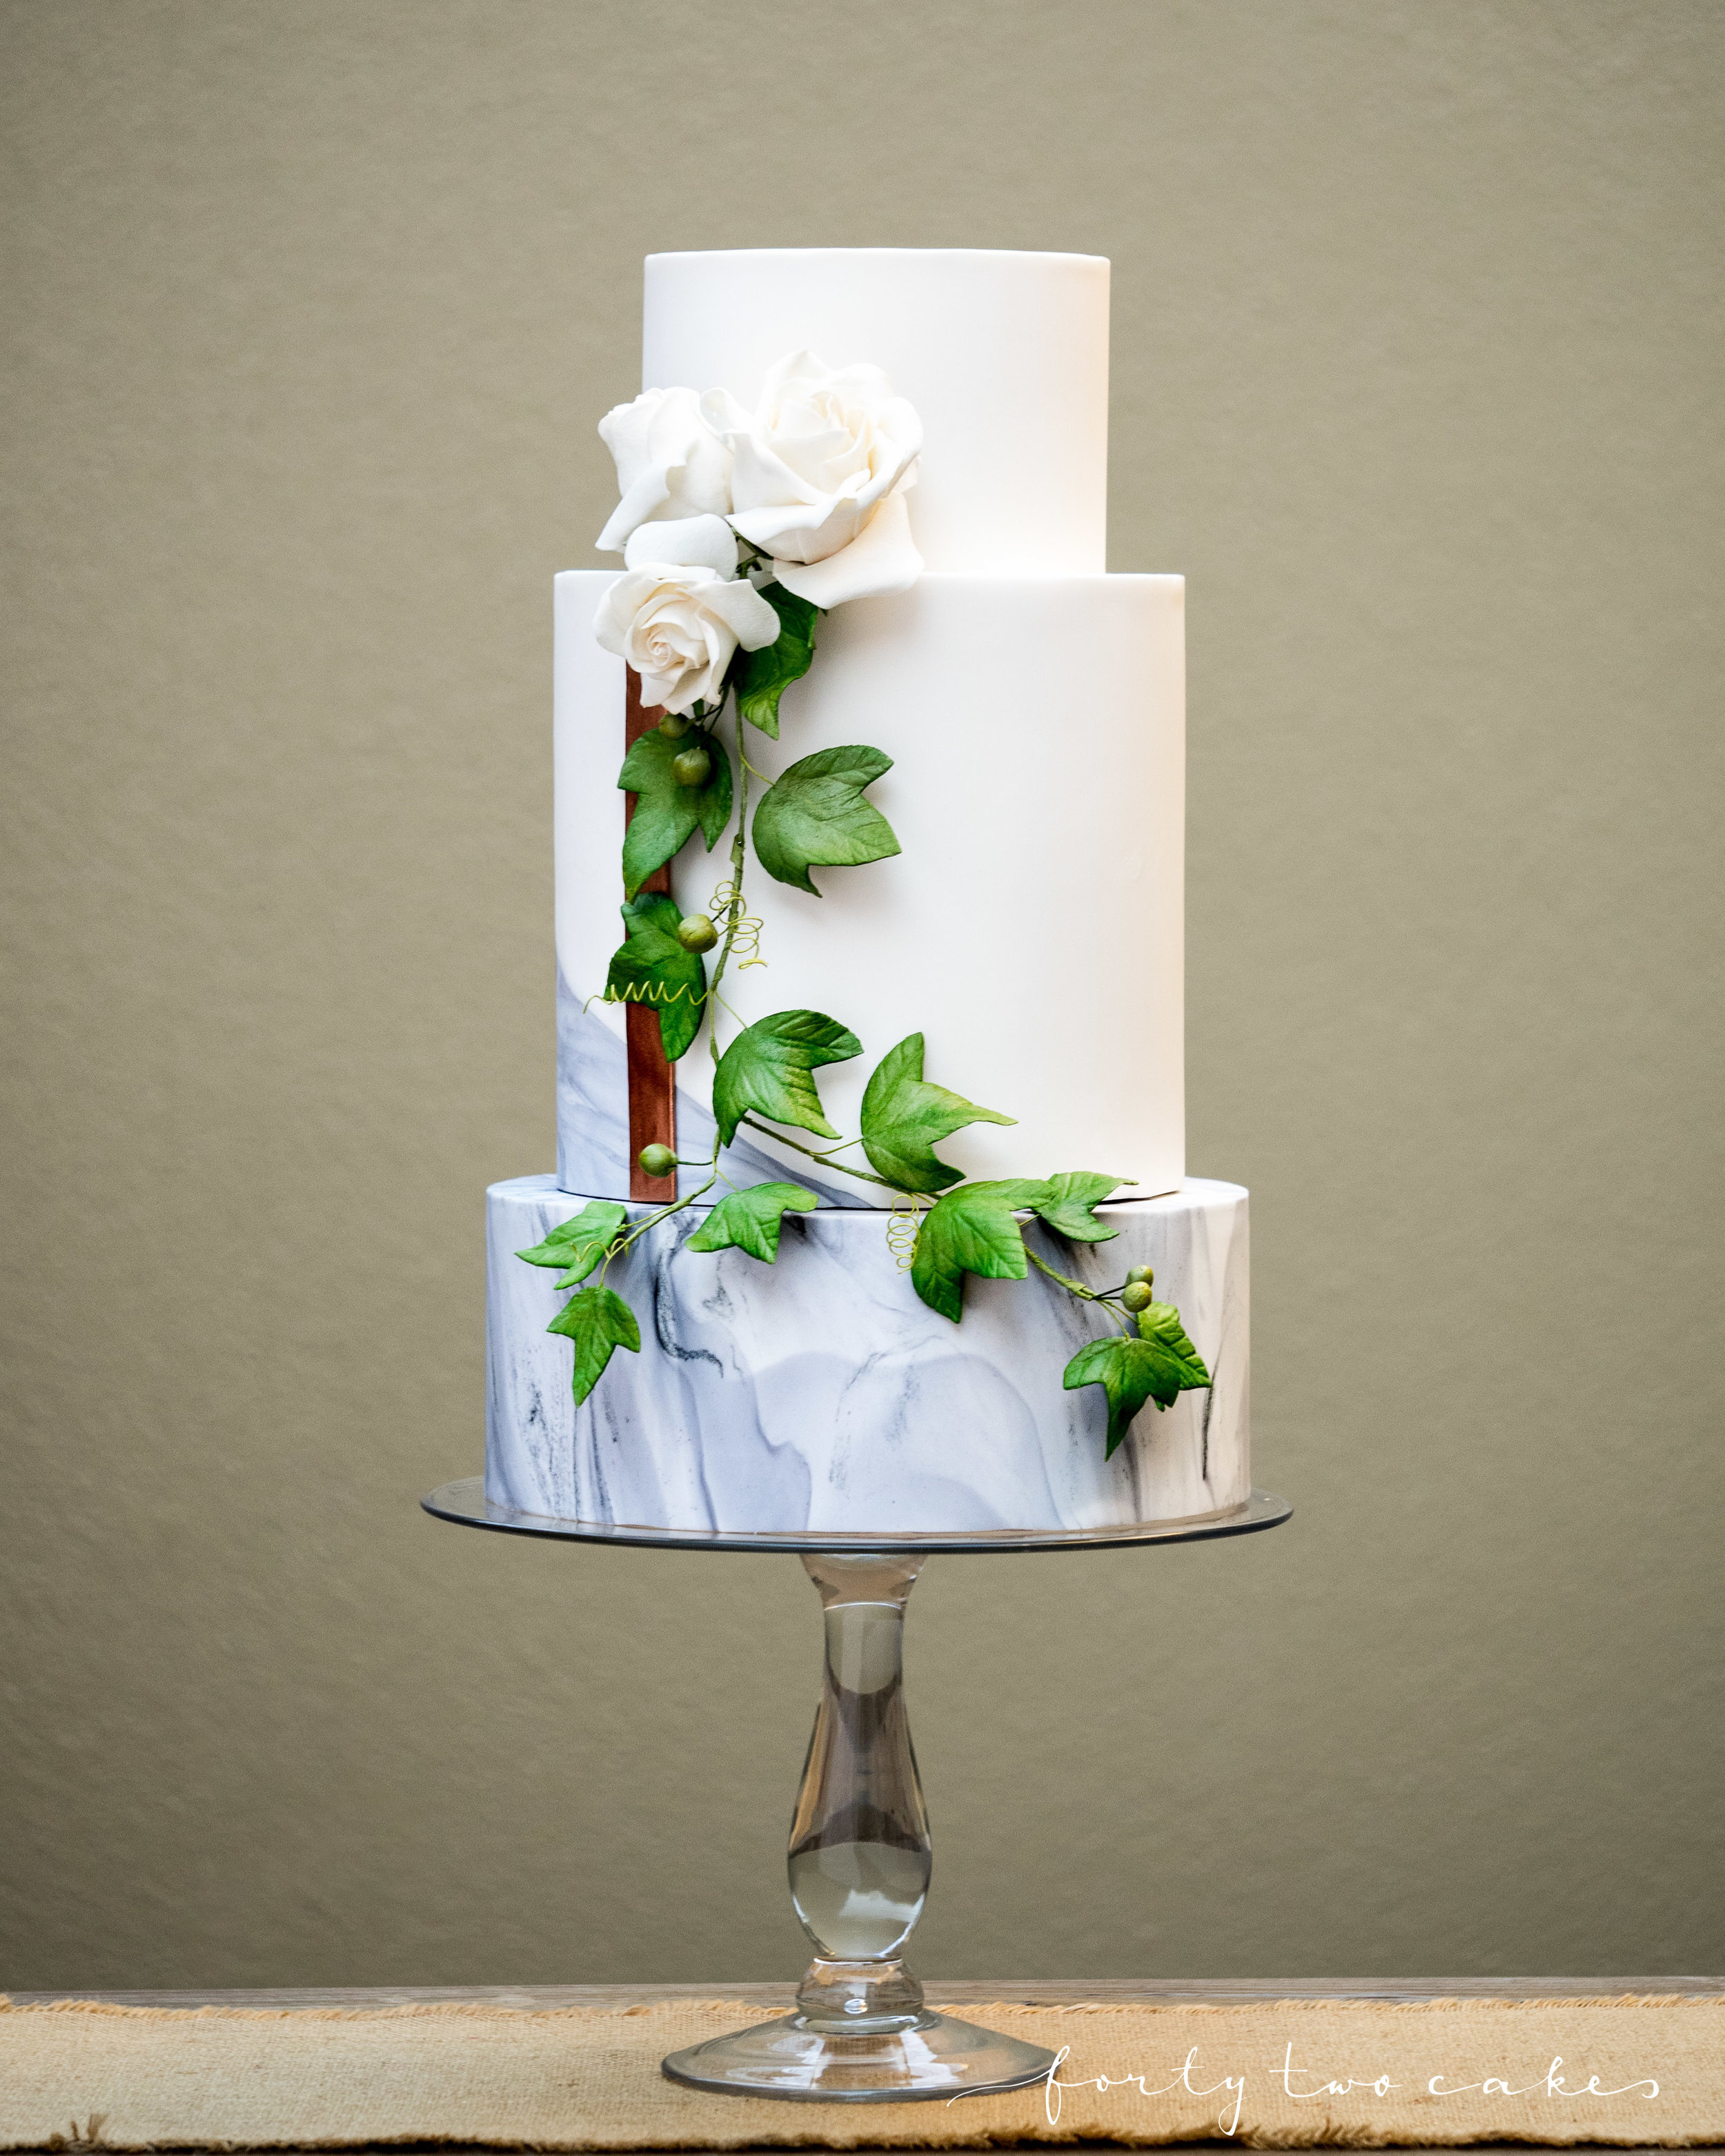 Forty-Two Cakes - Fondant-05-2.jpg